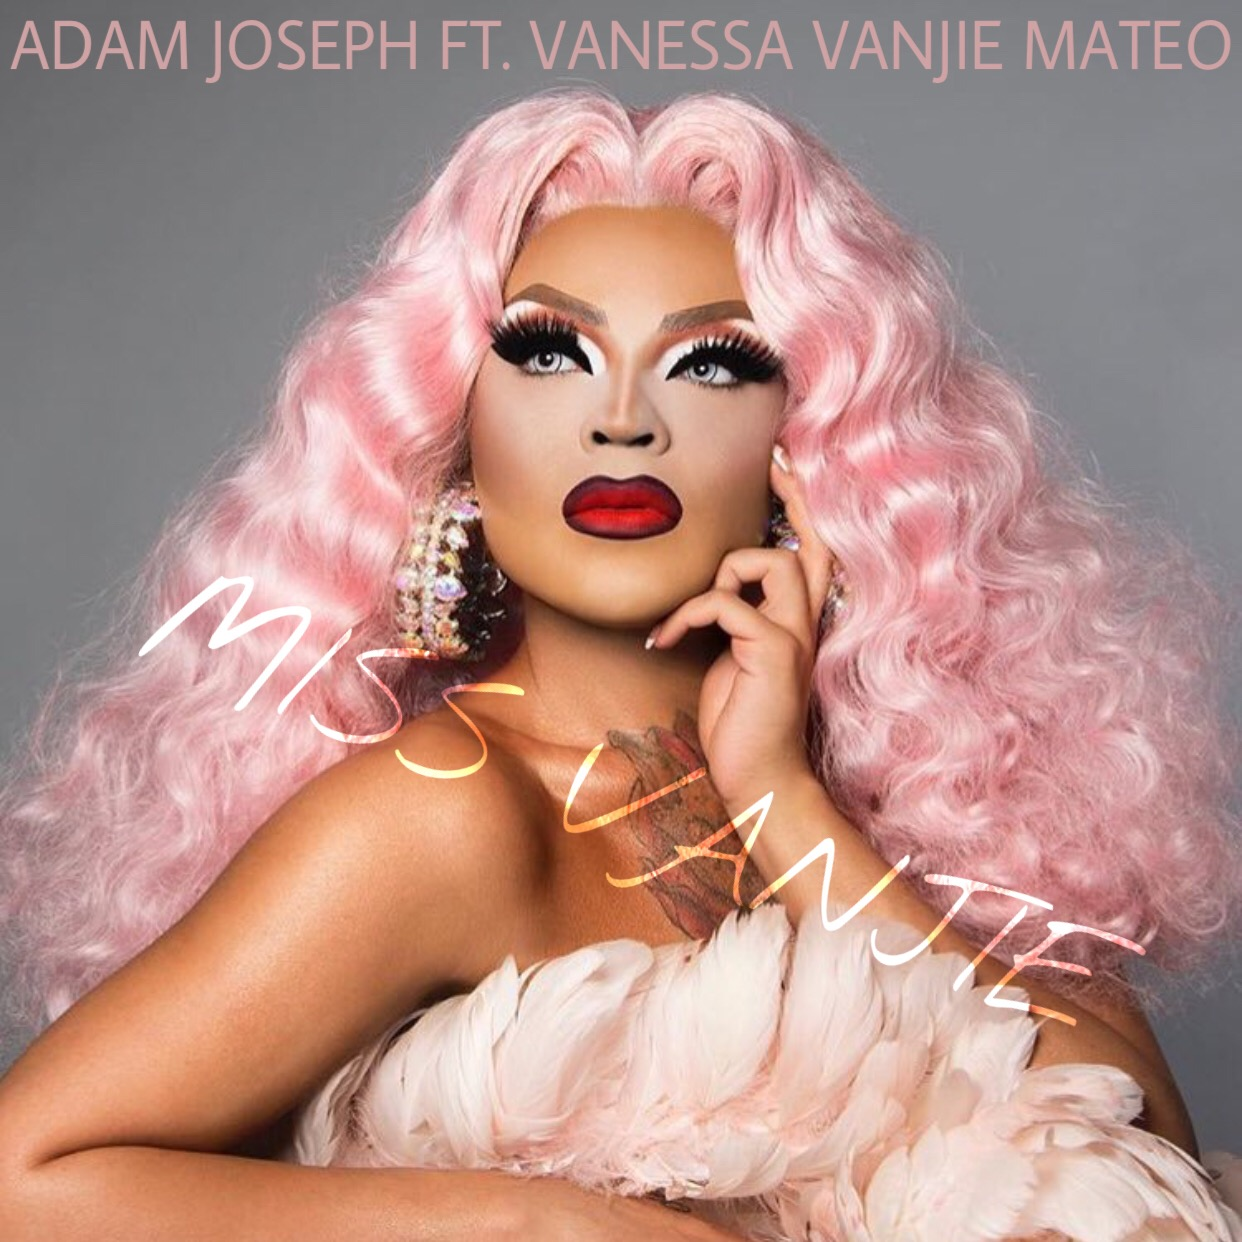 MISS VANJIE - She broke the internet and earned herself this bitch track produced by Adam Joseph.